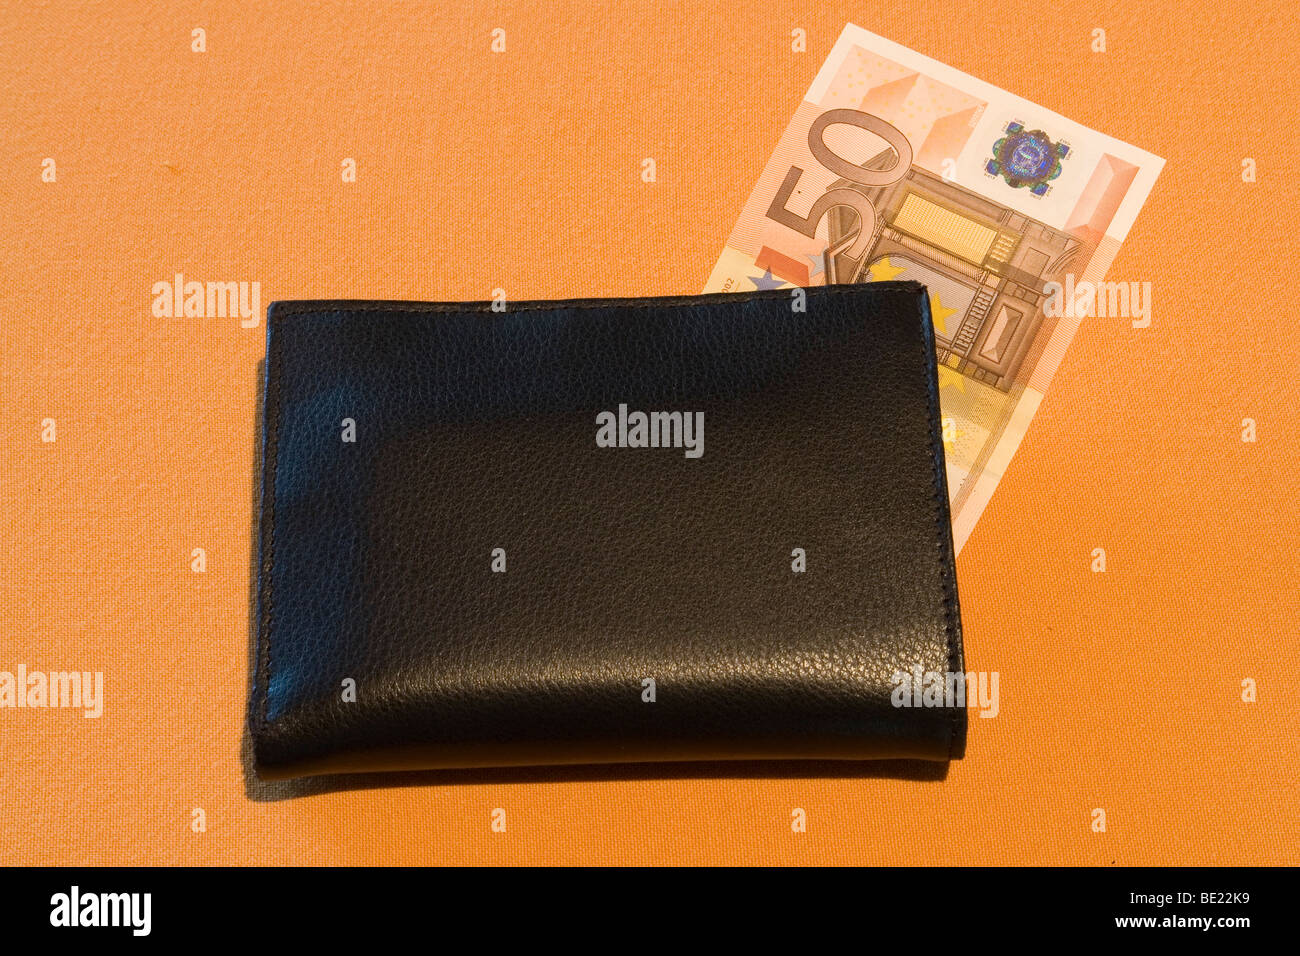 A black wallet with a euro banknote (France). Portefeuille noir avec billet de banque Euro (France). - Stock Image